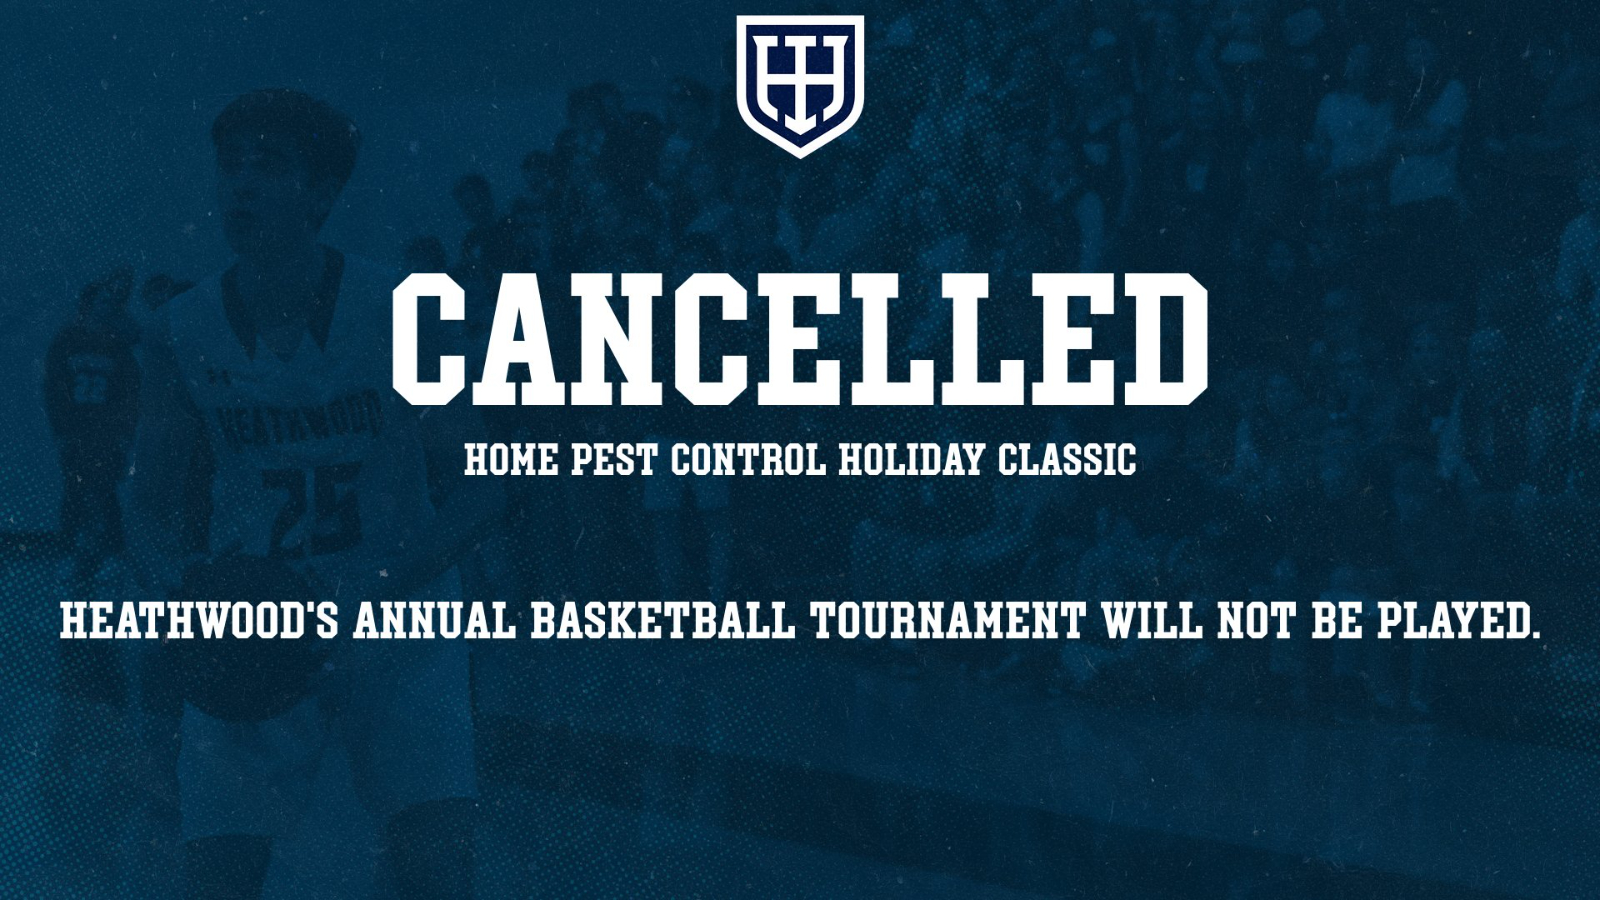 Home Pest Control Holiday Classic – CANCELLED